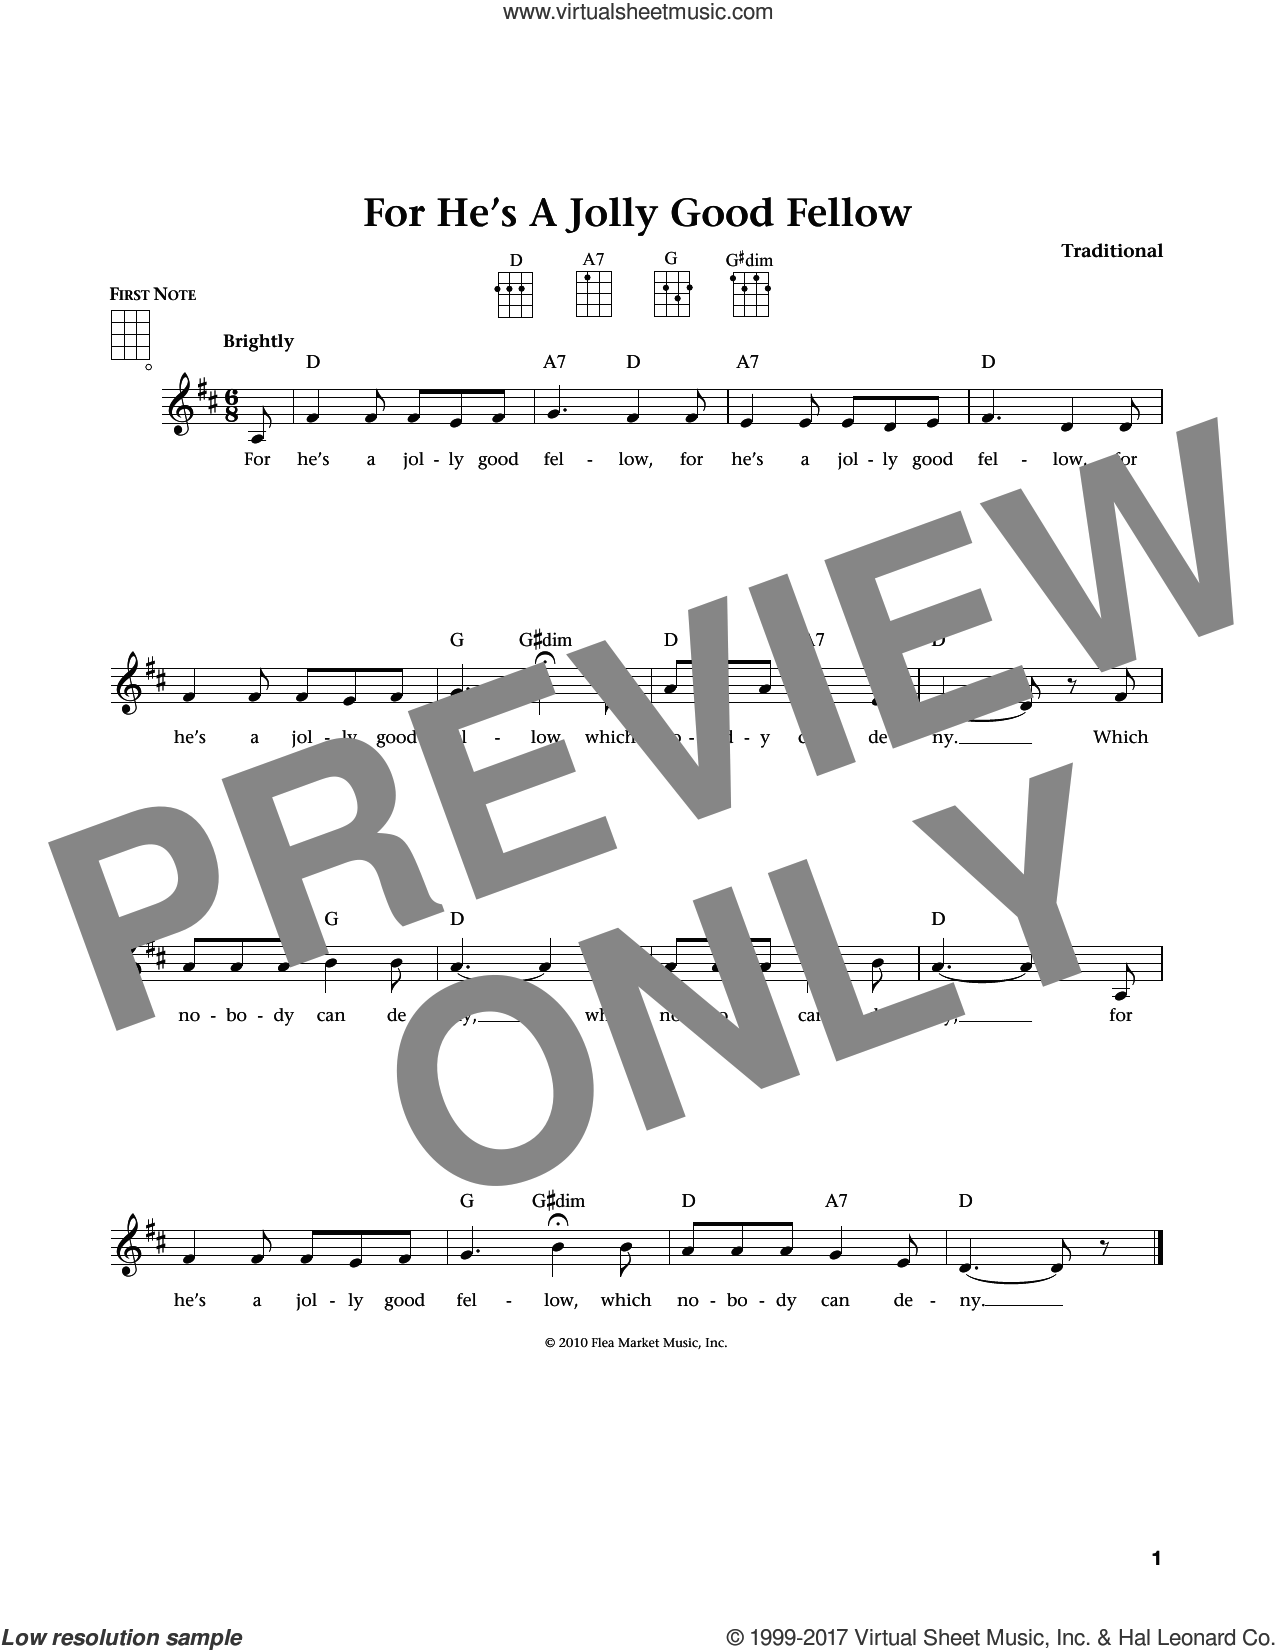 For He's A Jolly Good Fellow sheet music for ukulele , Jim Beloff and Liz Beloff, intermediate skill level